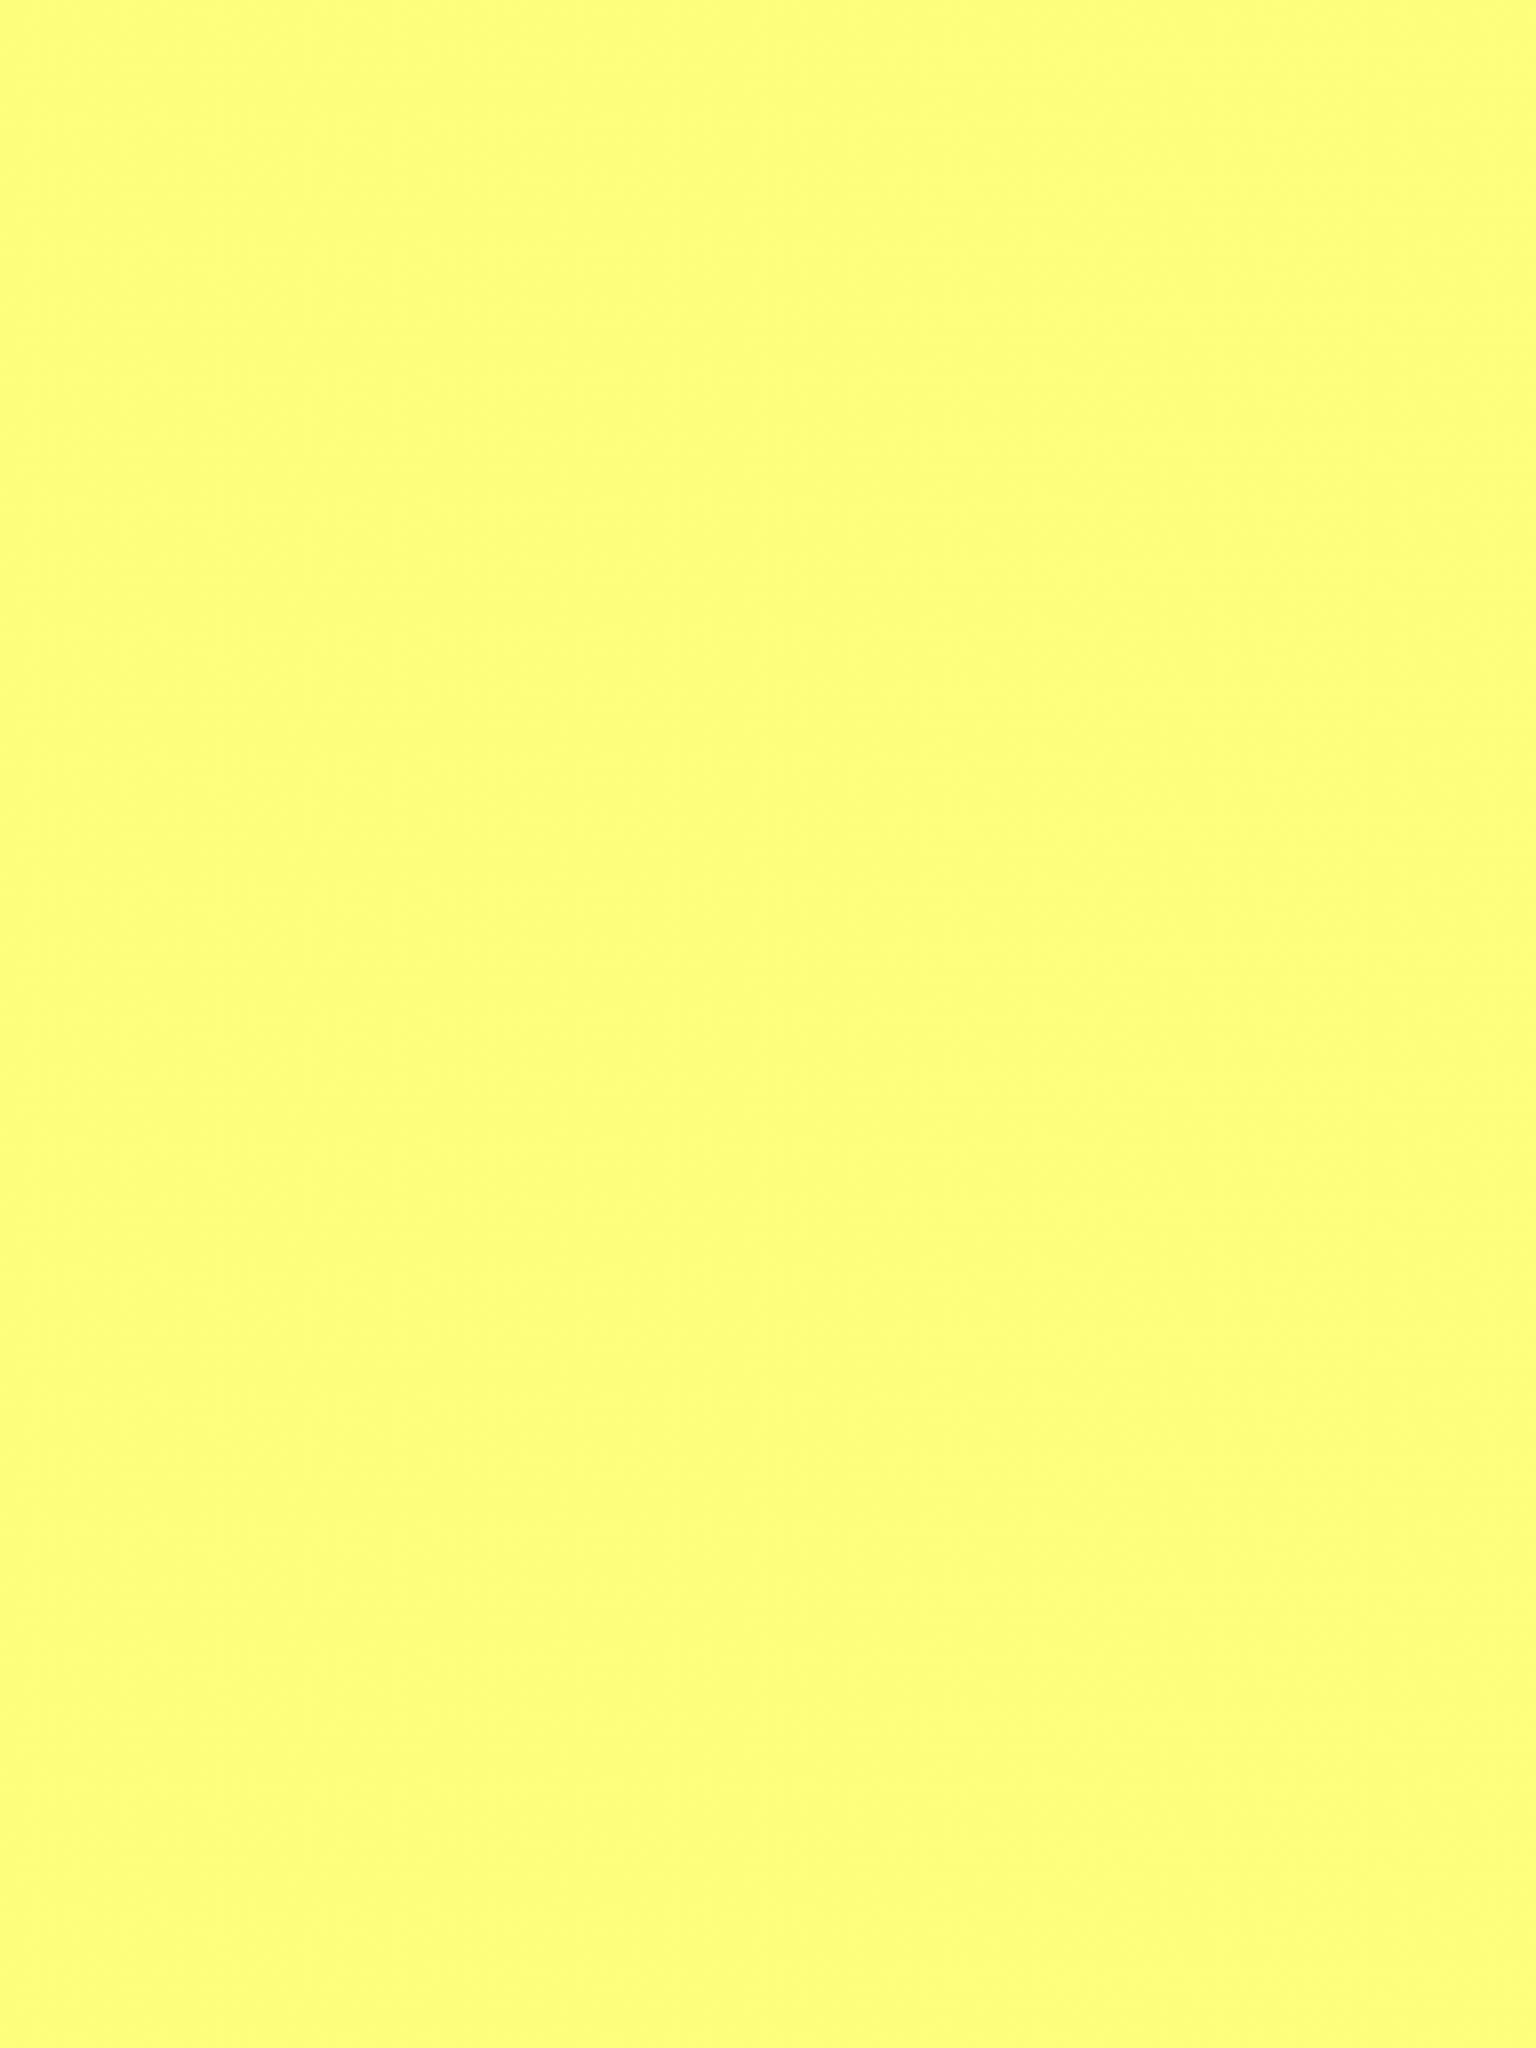 Free Download Light Yellow Background Image Collections